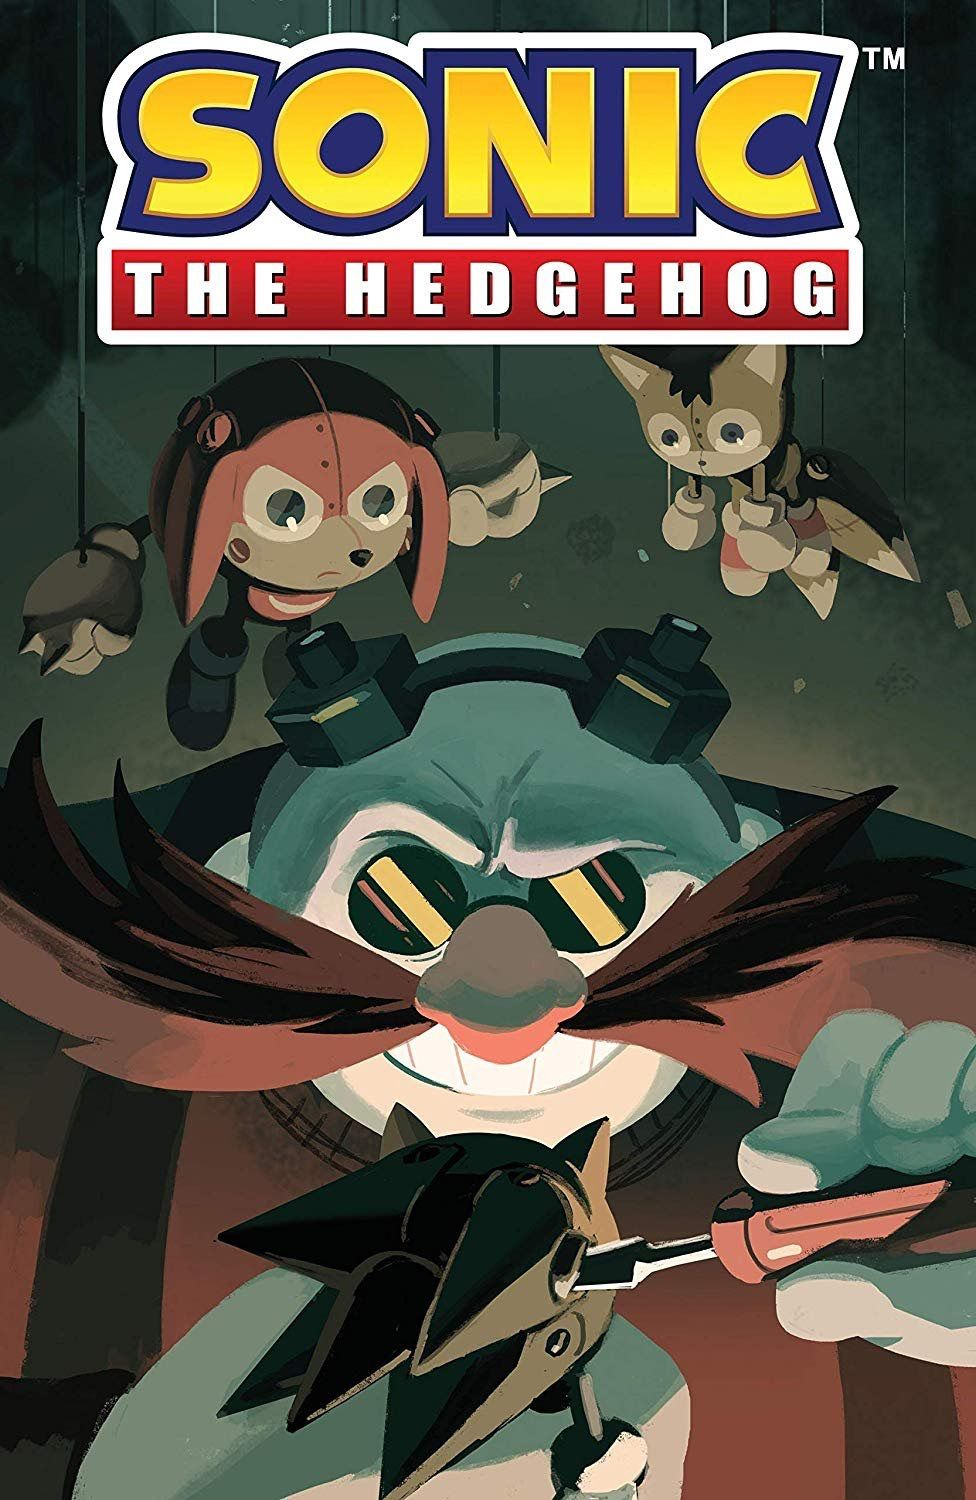 Sonic Idw Cover Issue 12 By Nathalie Fourdraine Sonic The Hedgehog Sonic Hedgehog Art